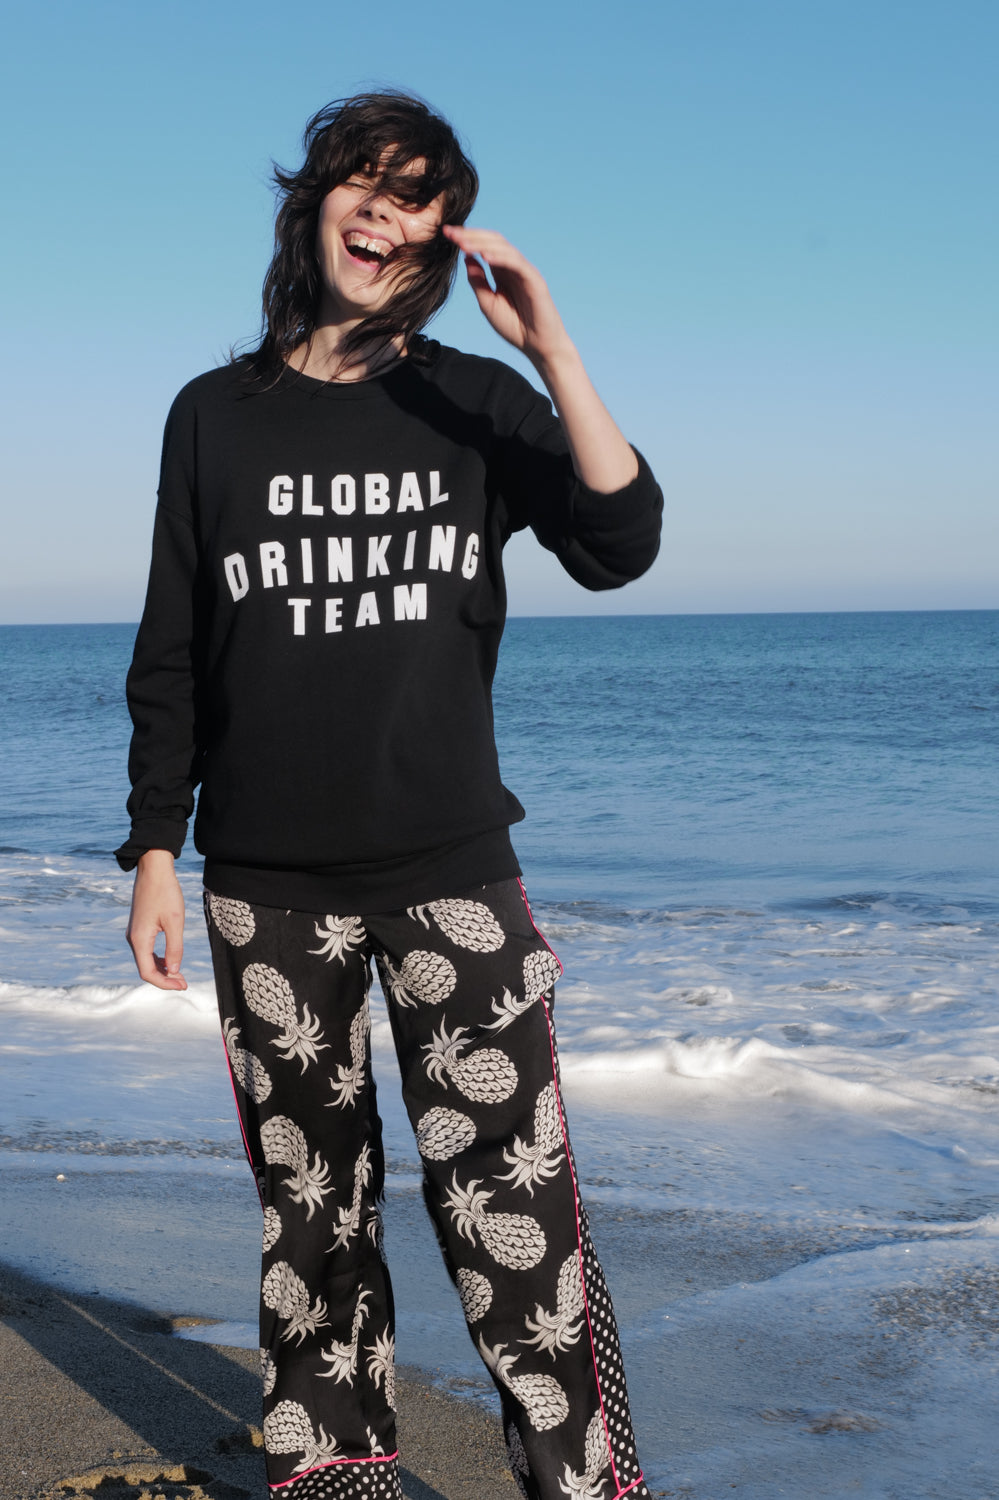 Global Drinking Team Sweatshirt